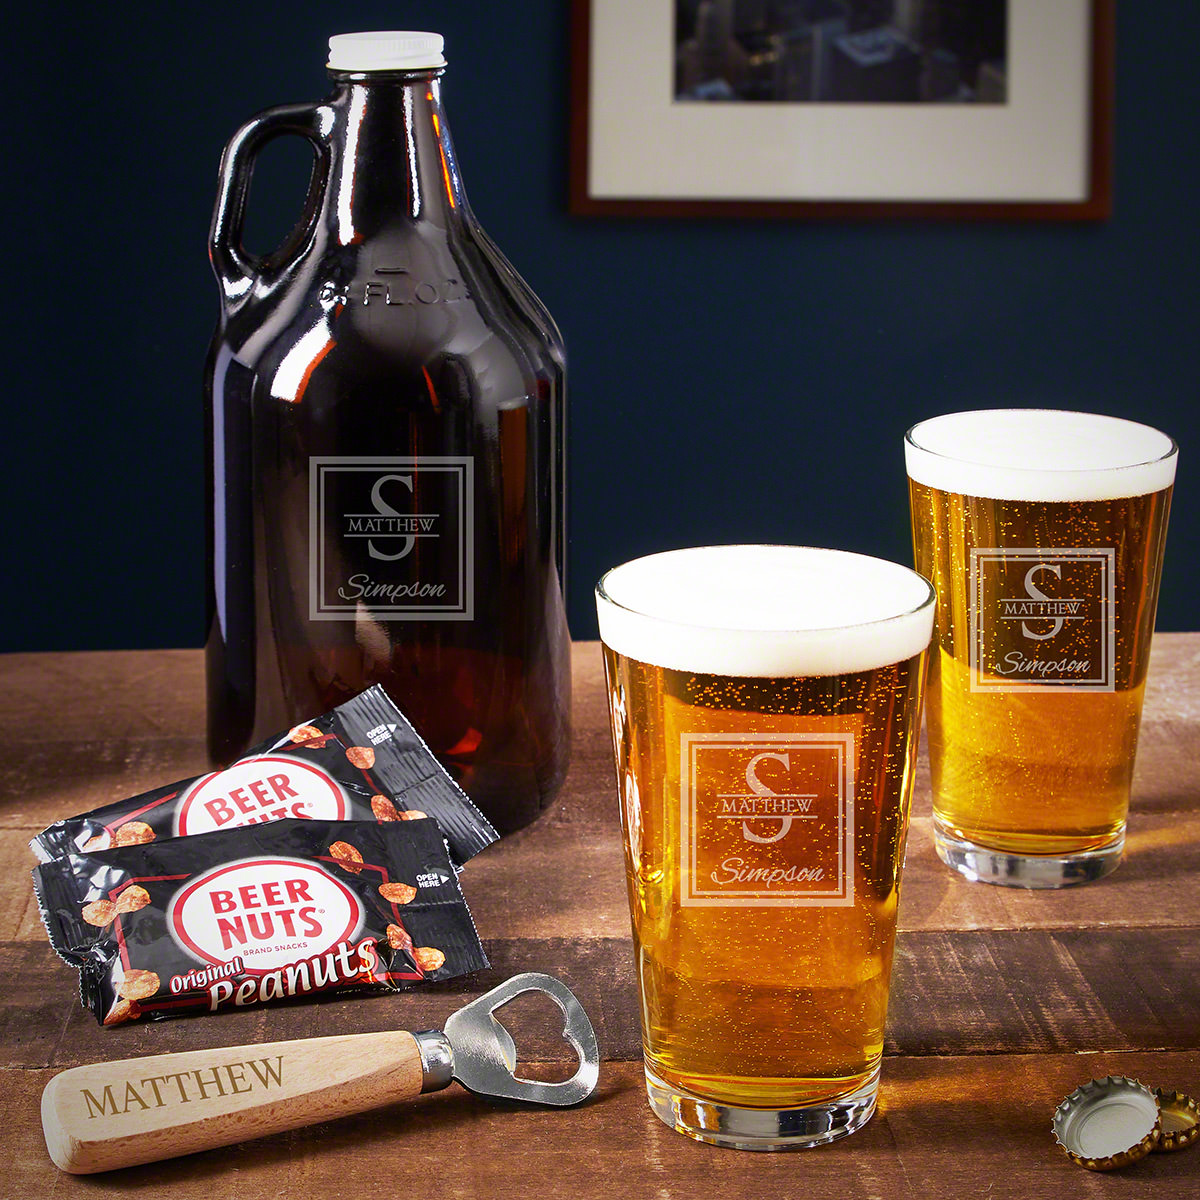 Oakhill Personalized Pint and Growler Set of Beer Gifts